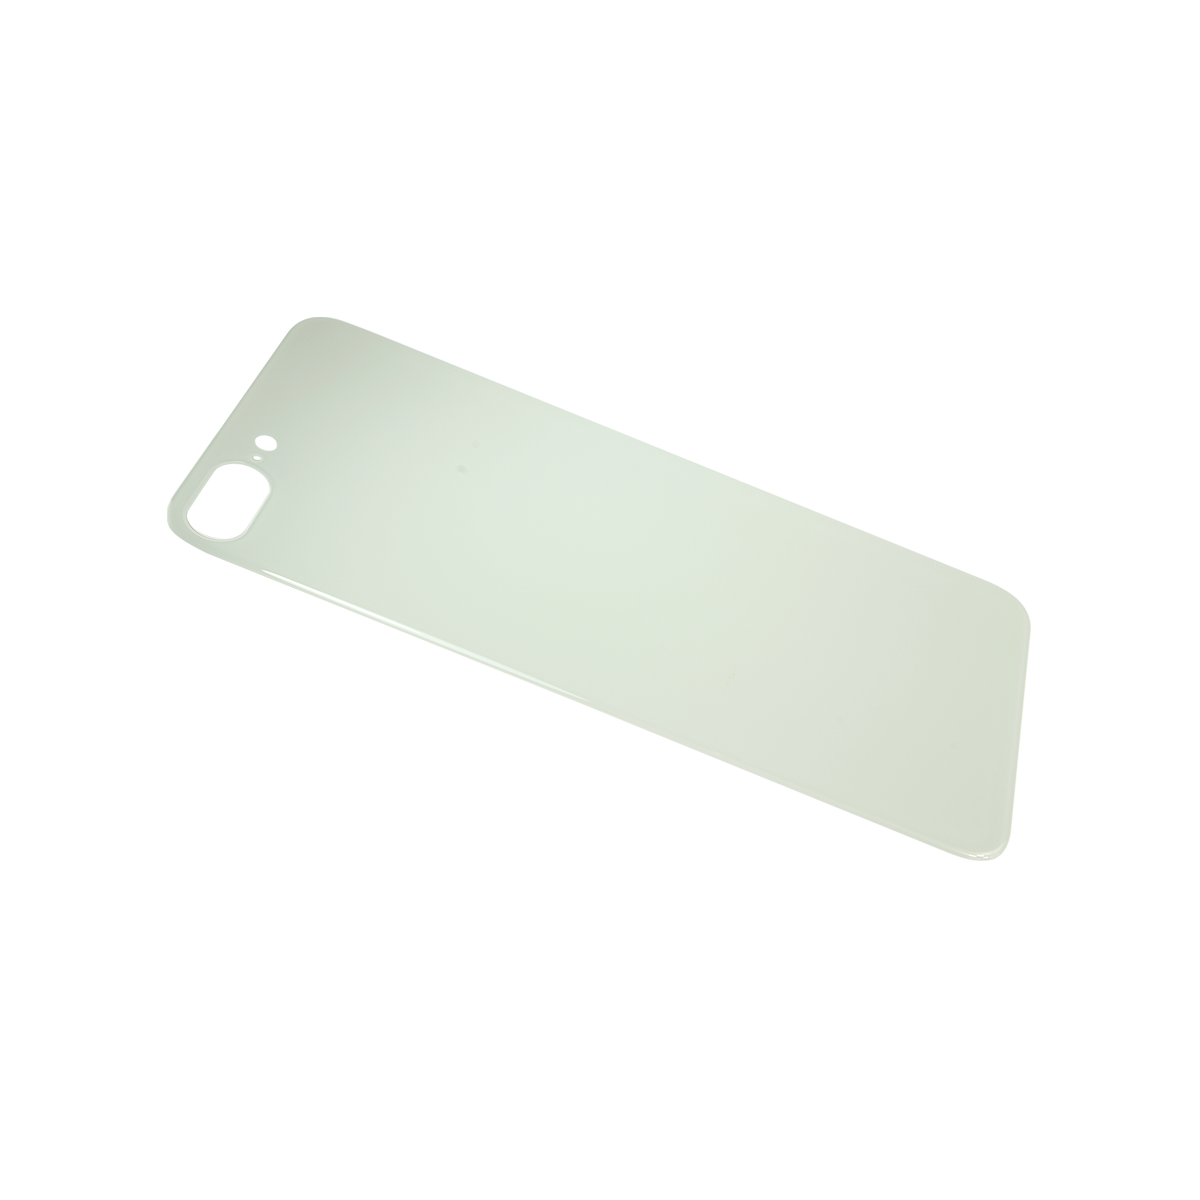 iPhone_8_Plus_Rear_Back_Glass_with_Big_Camera_Hole_White_side_SBDOS85RN5R5.png